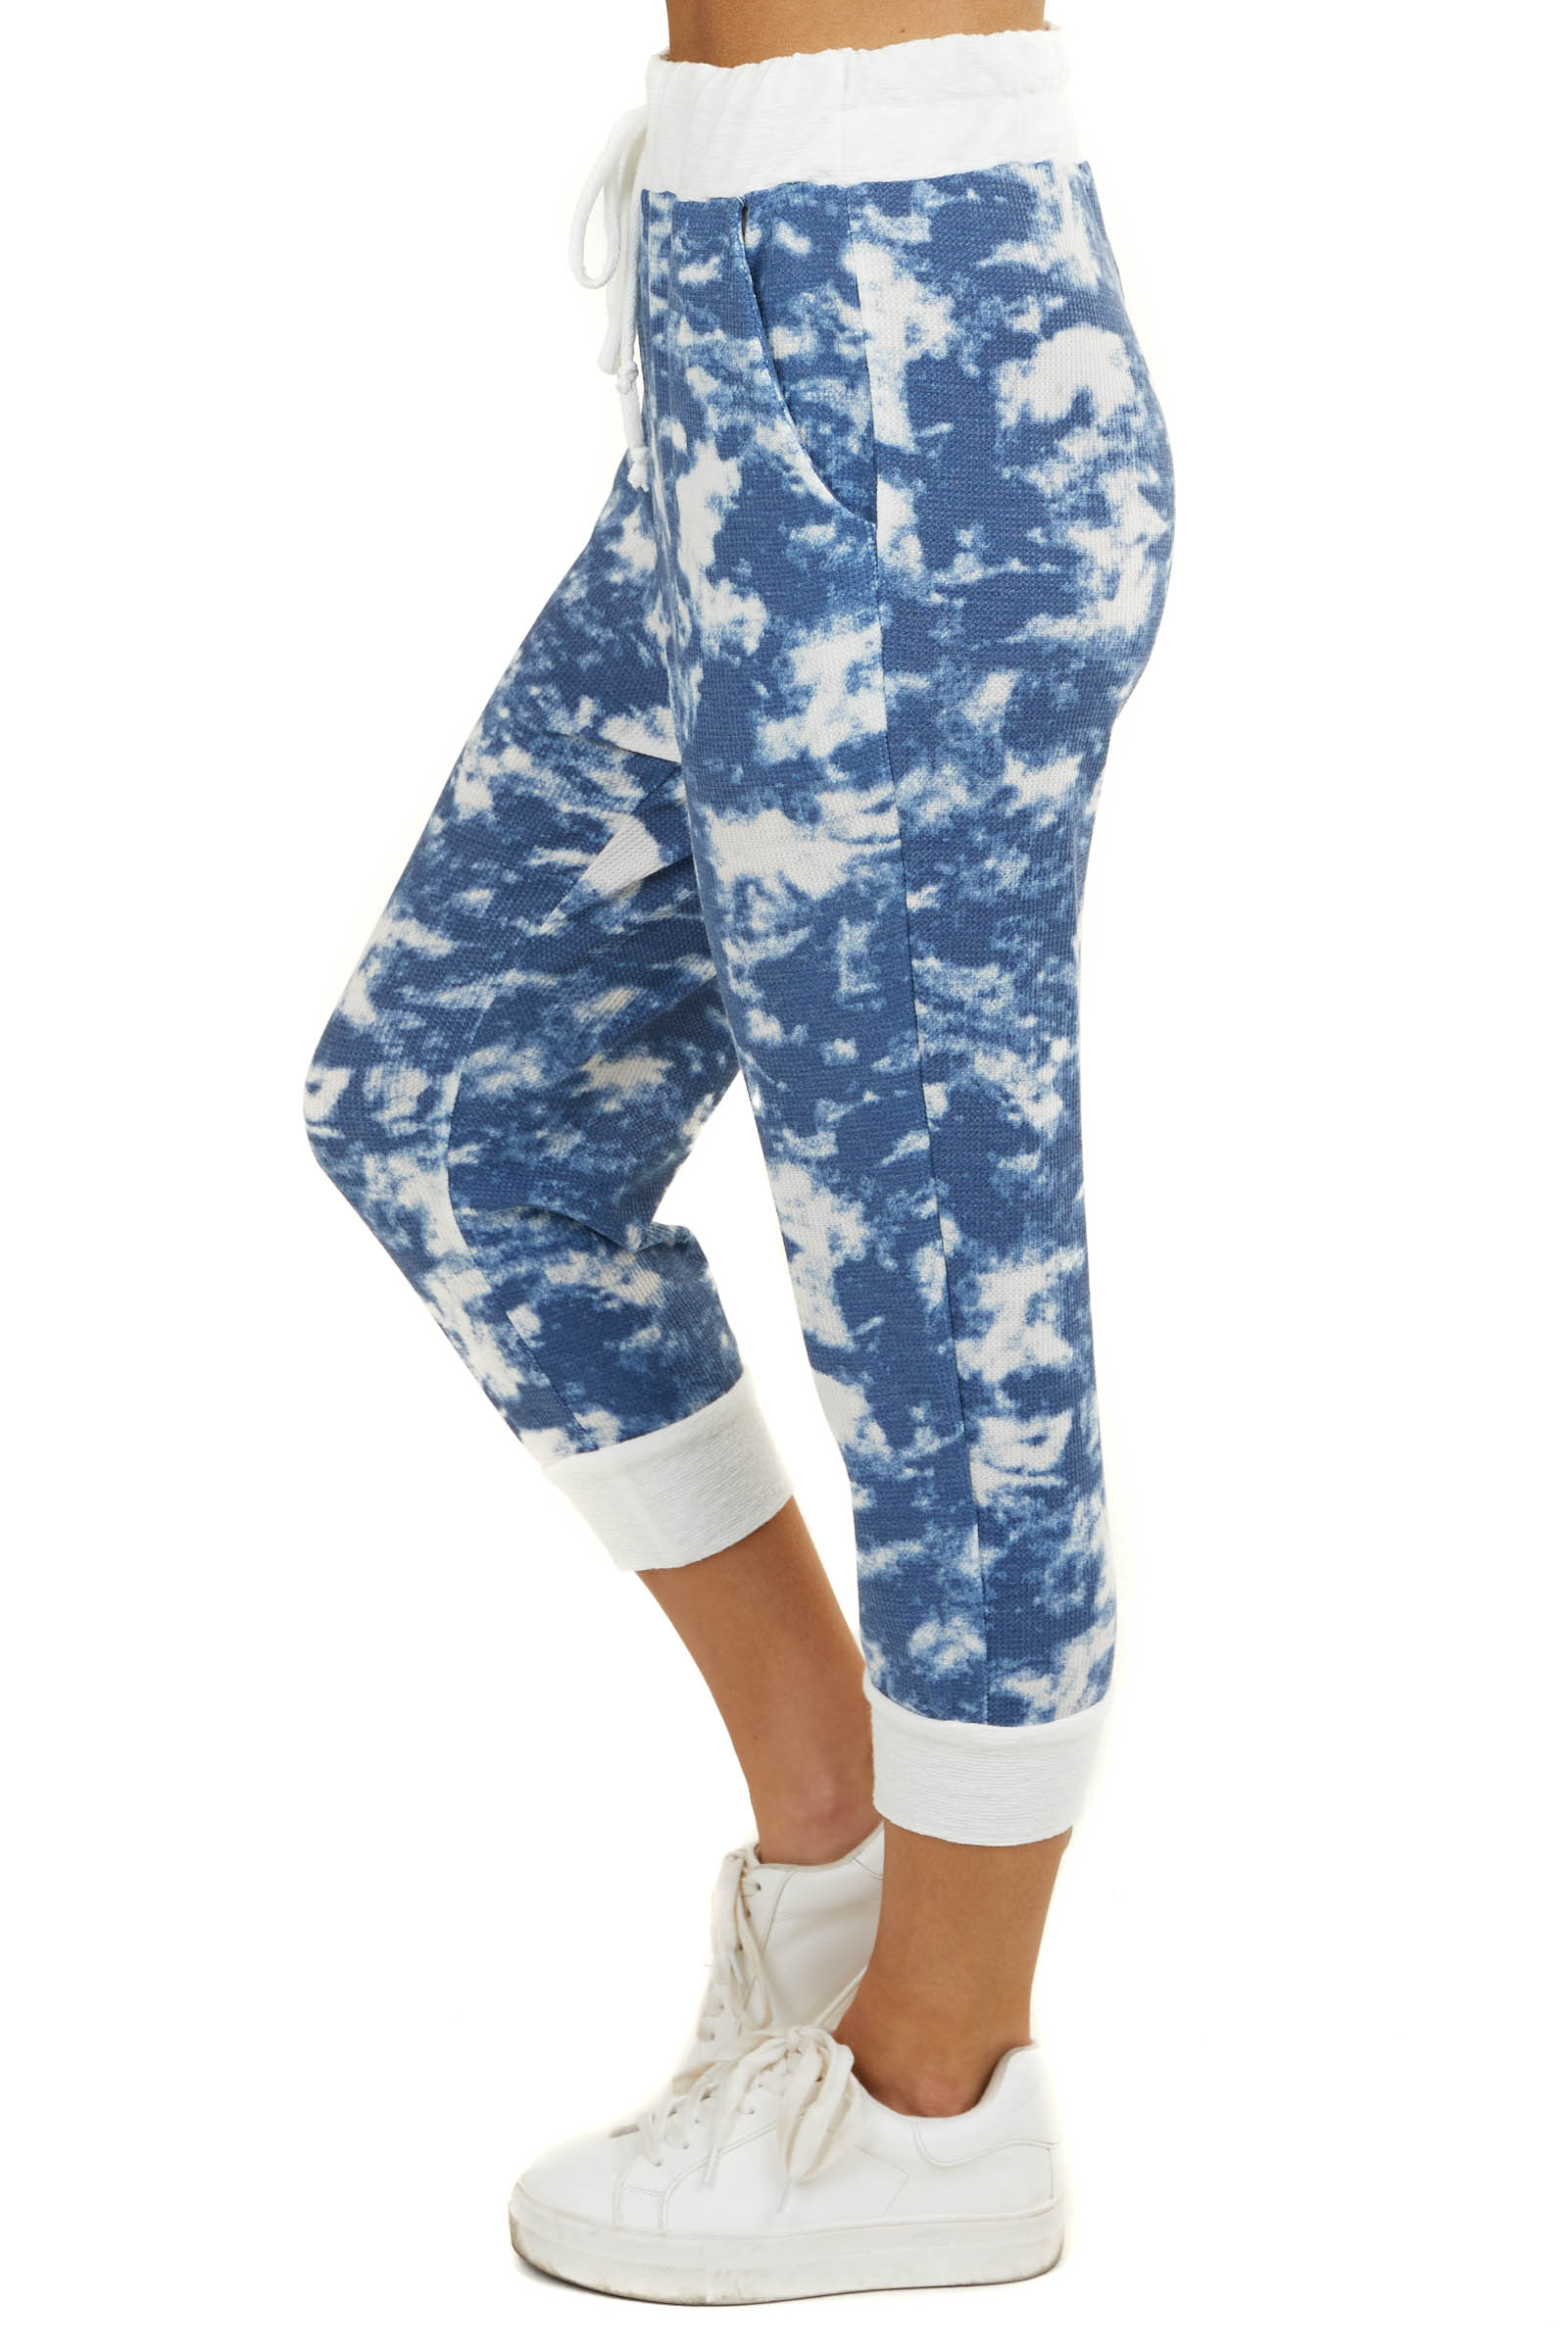 Navy Blue and White Tie Dye Capri Joggers with Pockets